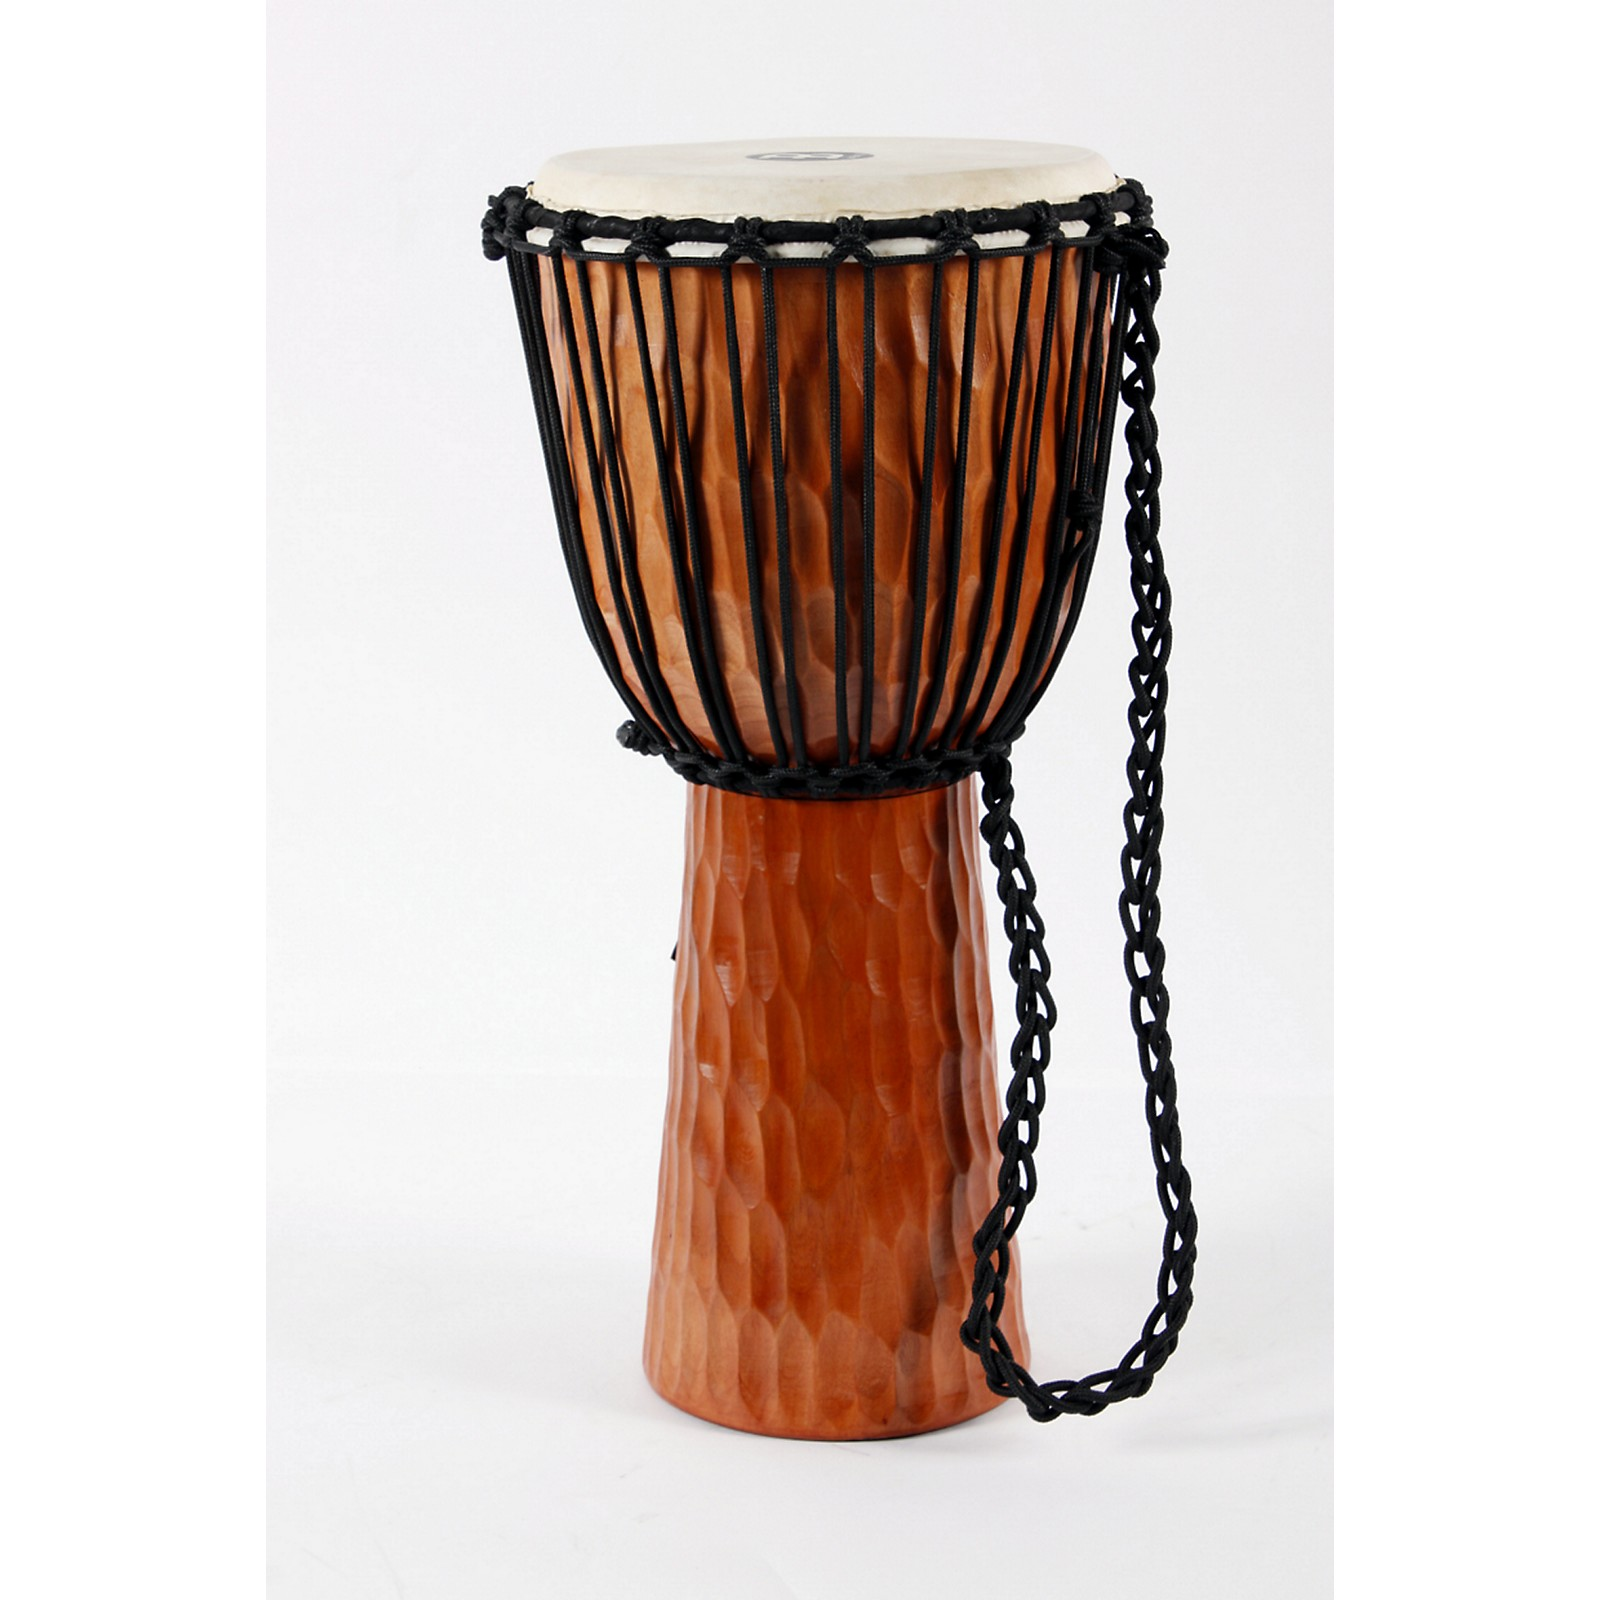 Meinl Headliner Nile Series Rope Tuned Djembe 12 In